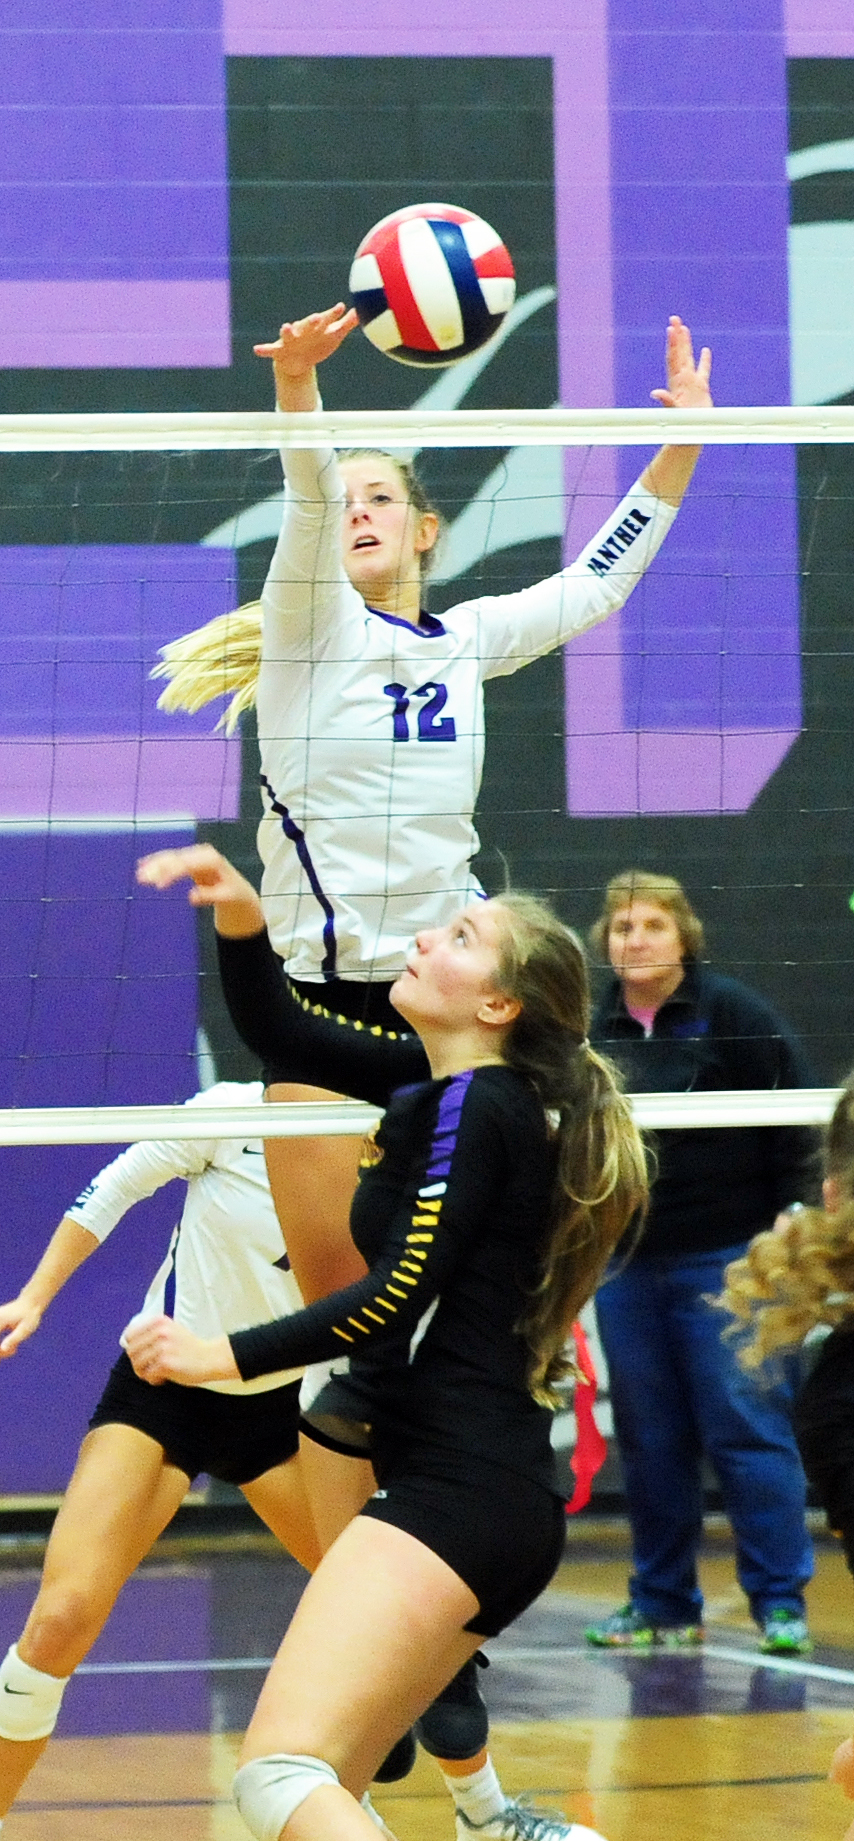 NICK INGRAM/Citizen photo Park Hill South senior Andi Elley (12) tips a ball over the net in a match with Blue Springs on Thursday, Sept. 29 at Park Hill South High School in Riverside, Mo.